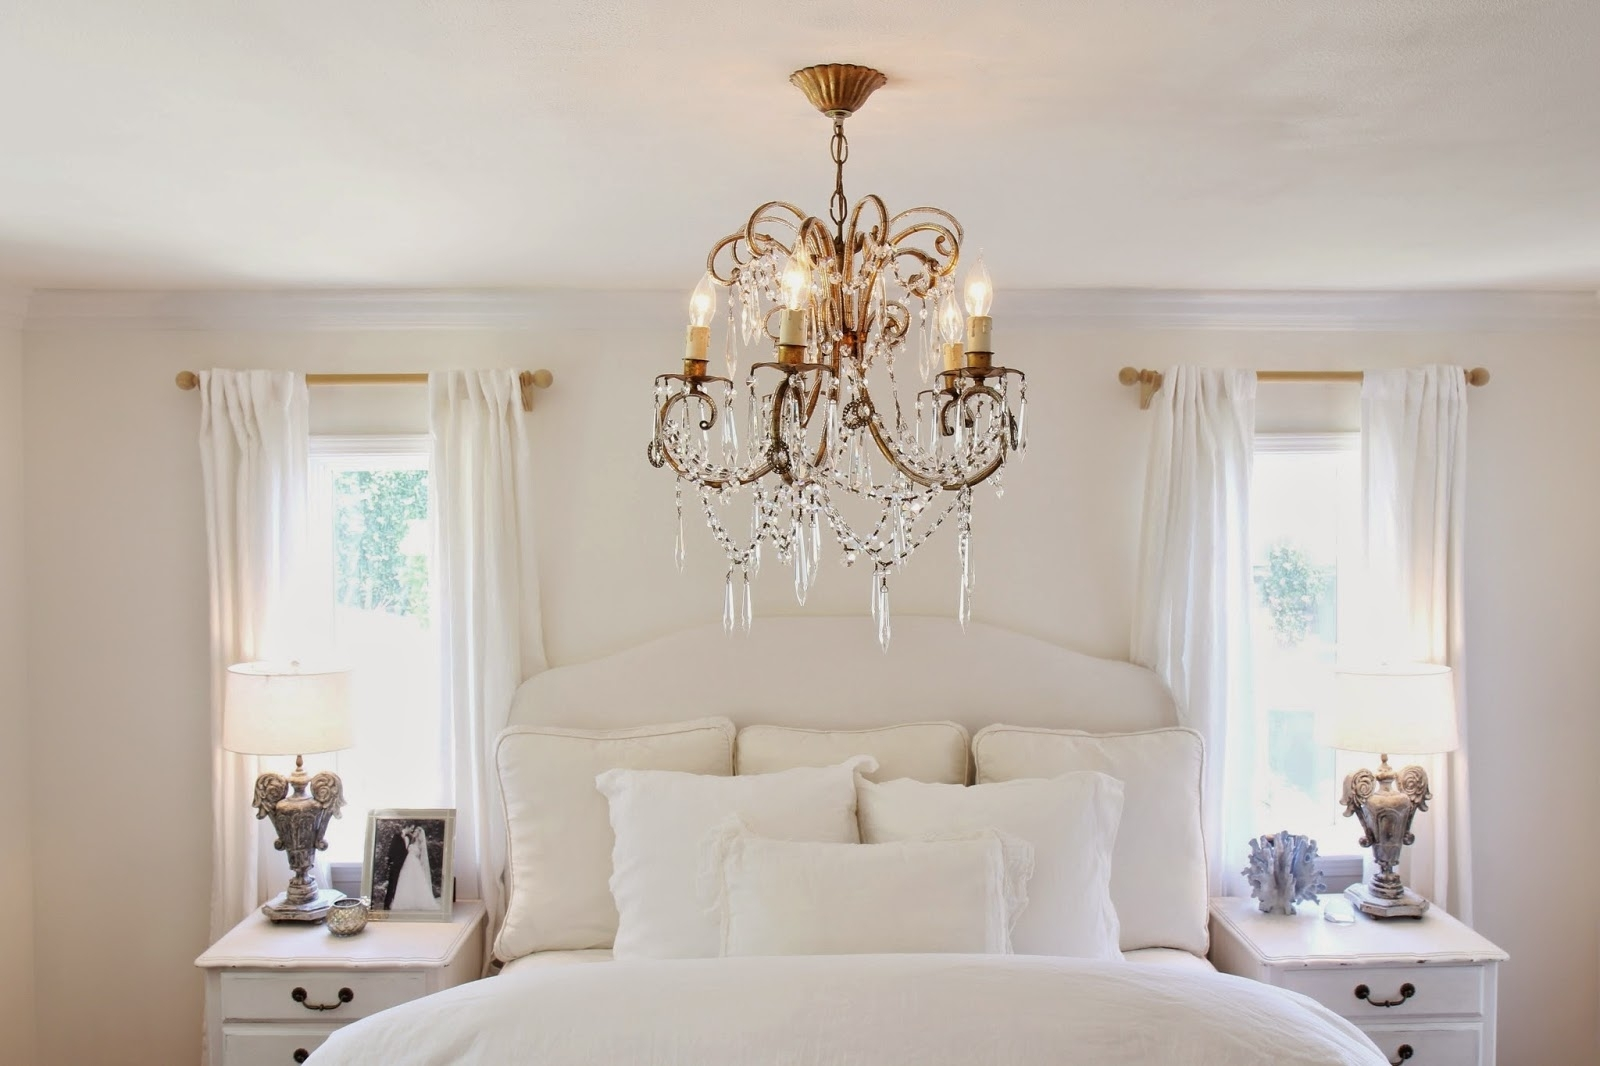 Bedroom Chandeliers With Regard To Trendy Nora's Nest: A Chandelier For The Master Bedroom (View 3 of 20)